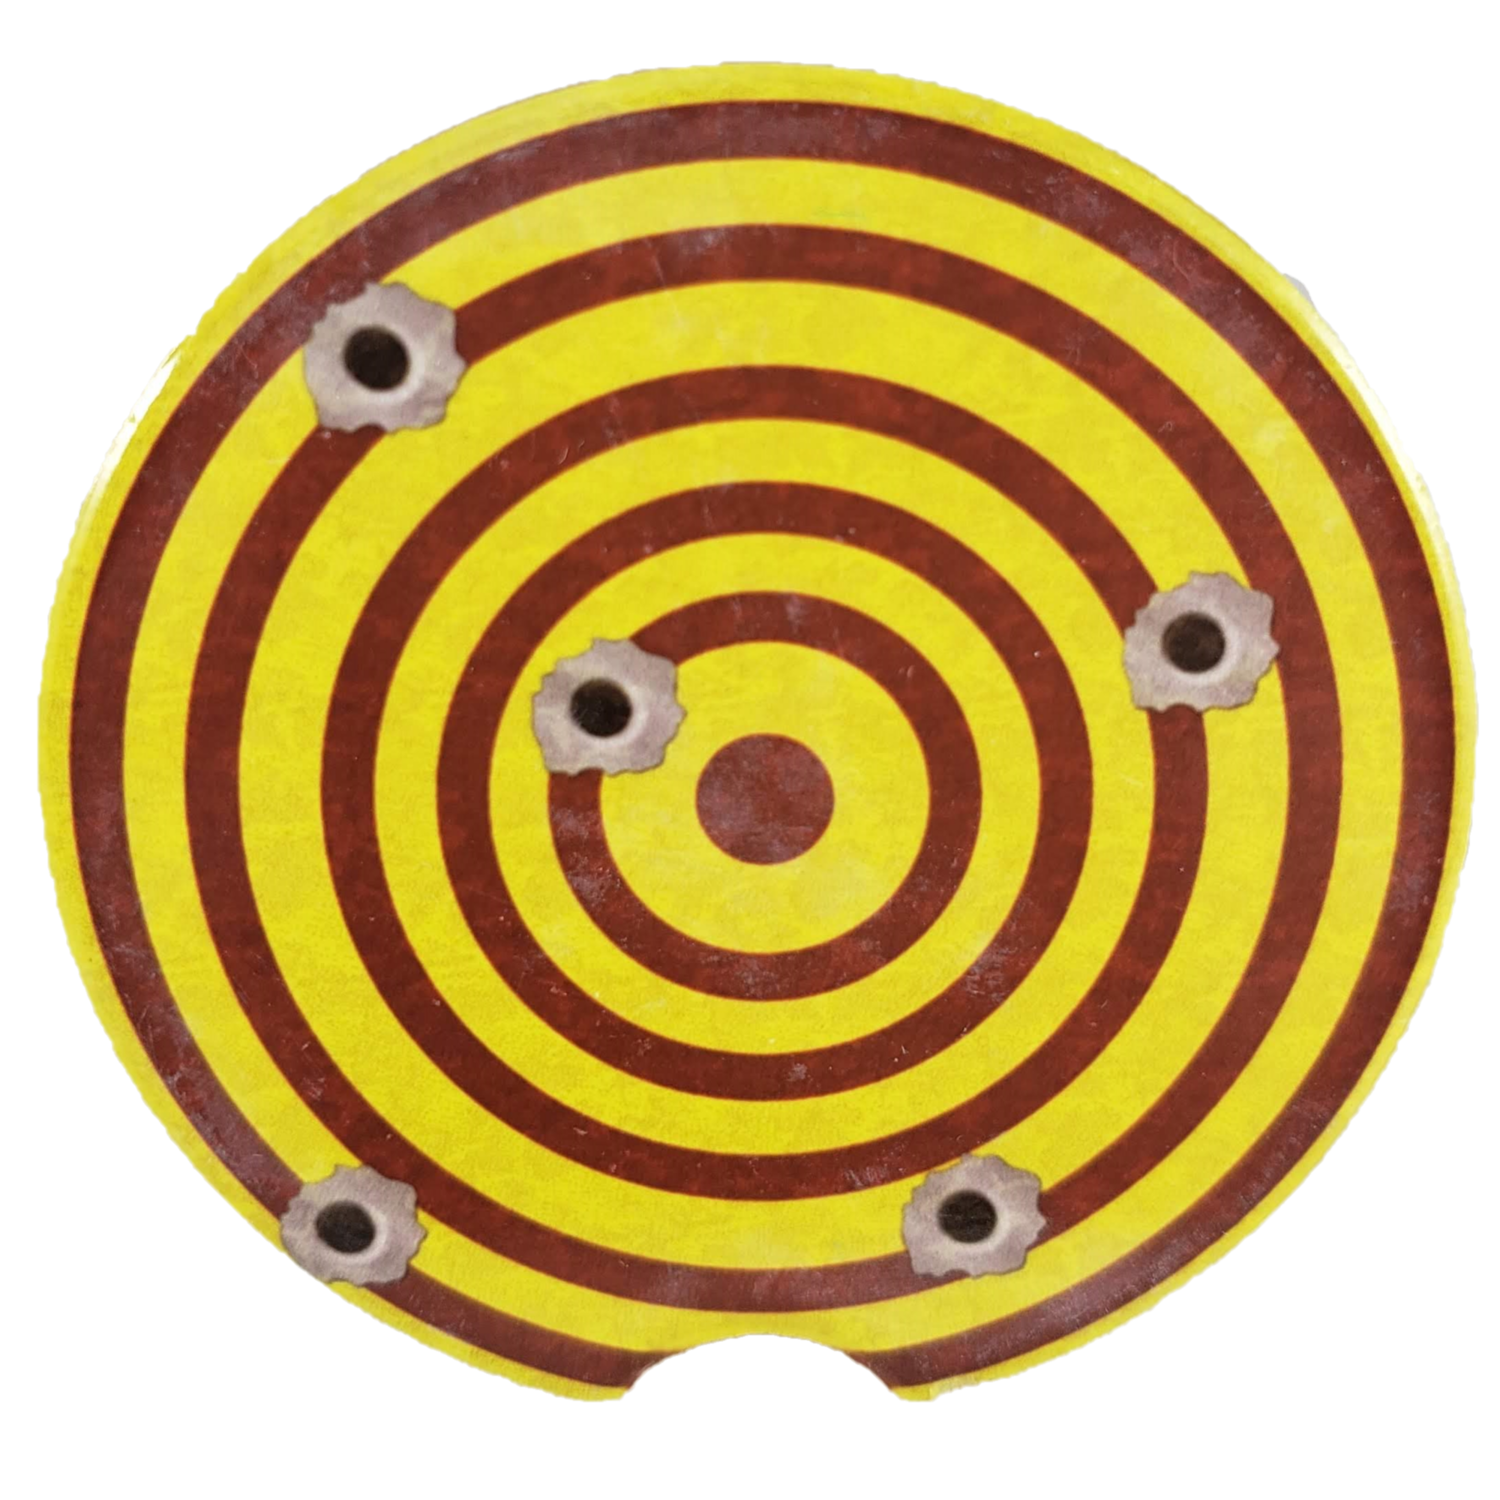 Bullet Target Sandstone Car Coaster - Set of Two